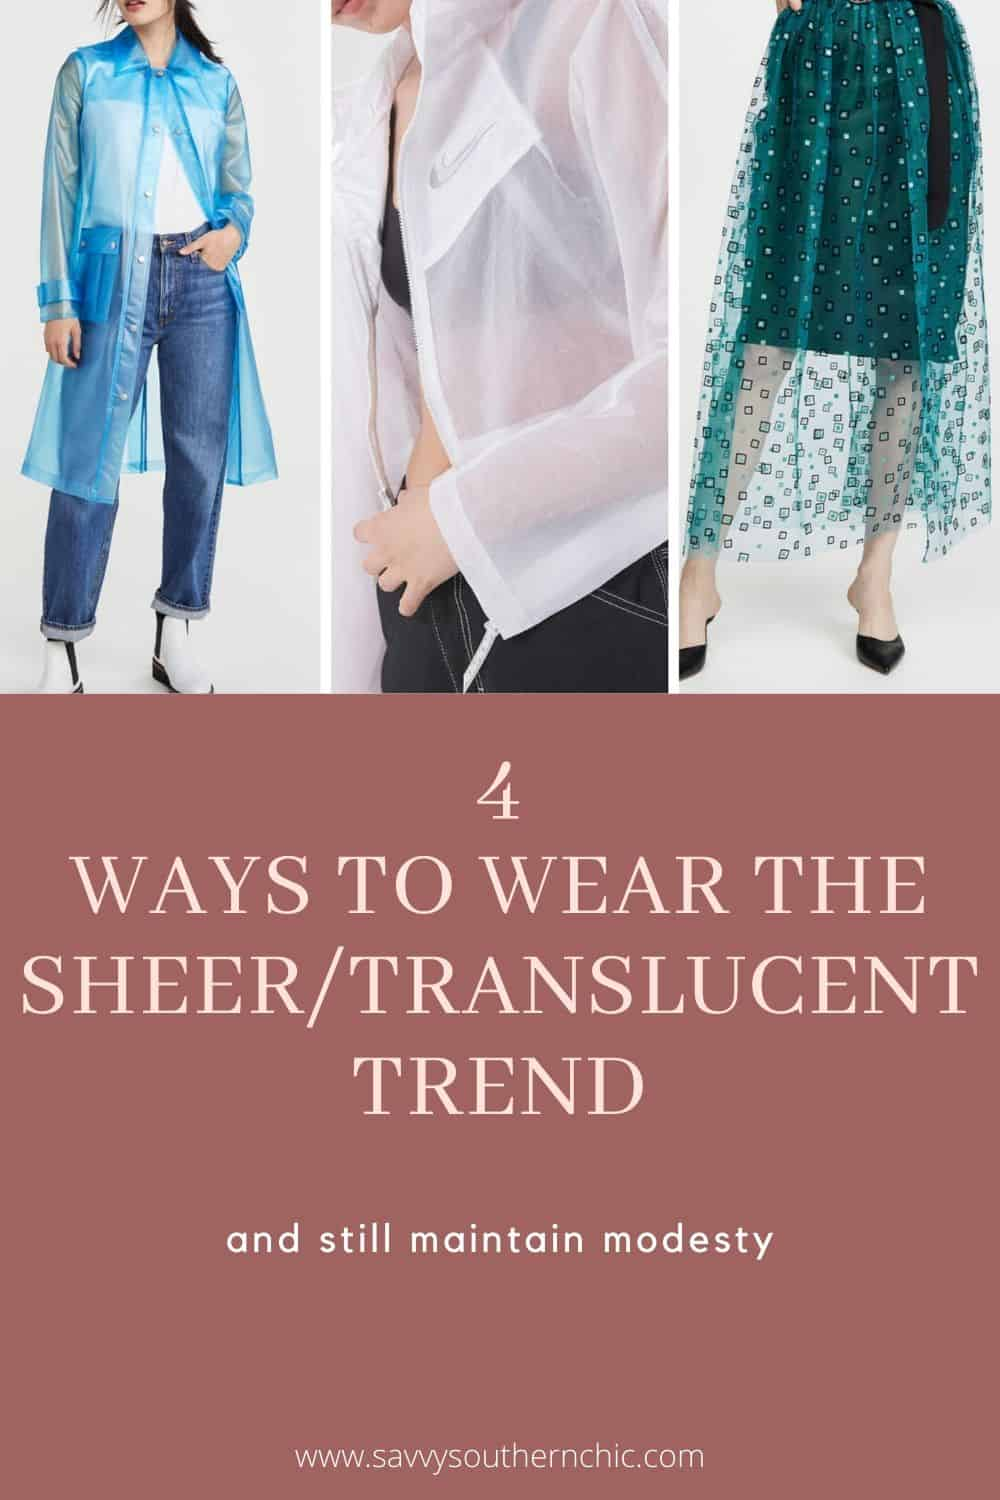 4 ways to wear the sheer/translucent trend